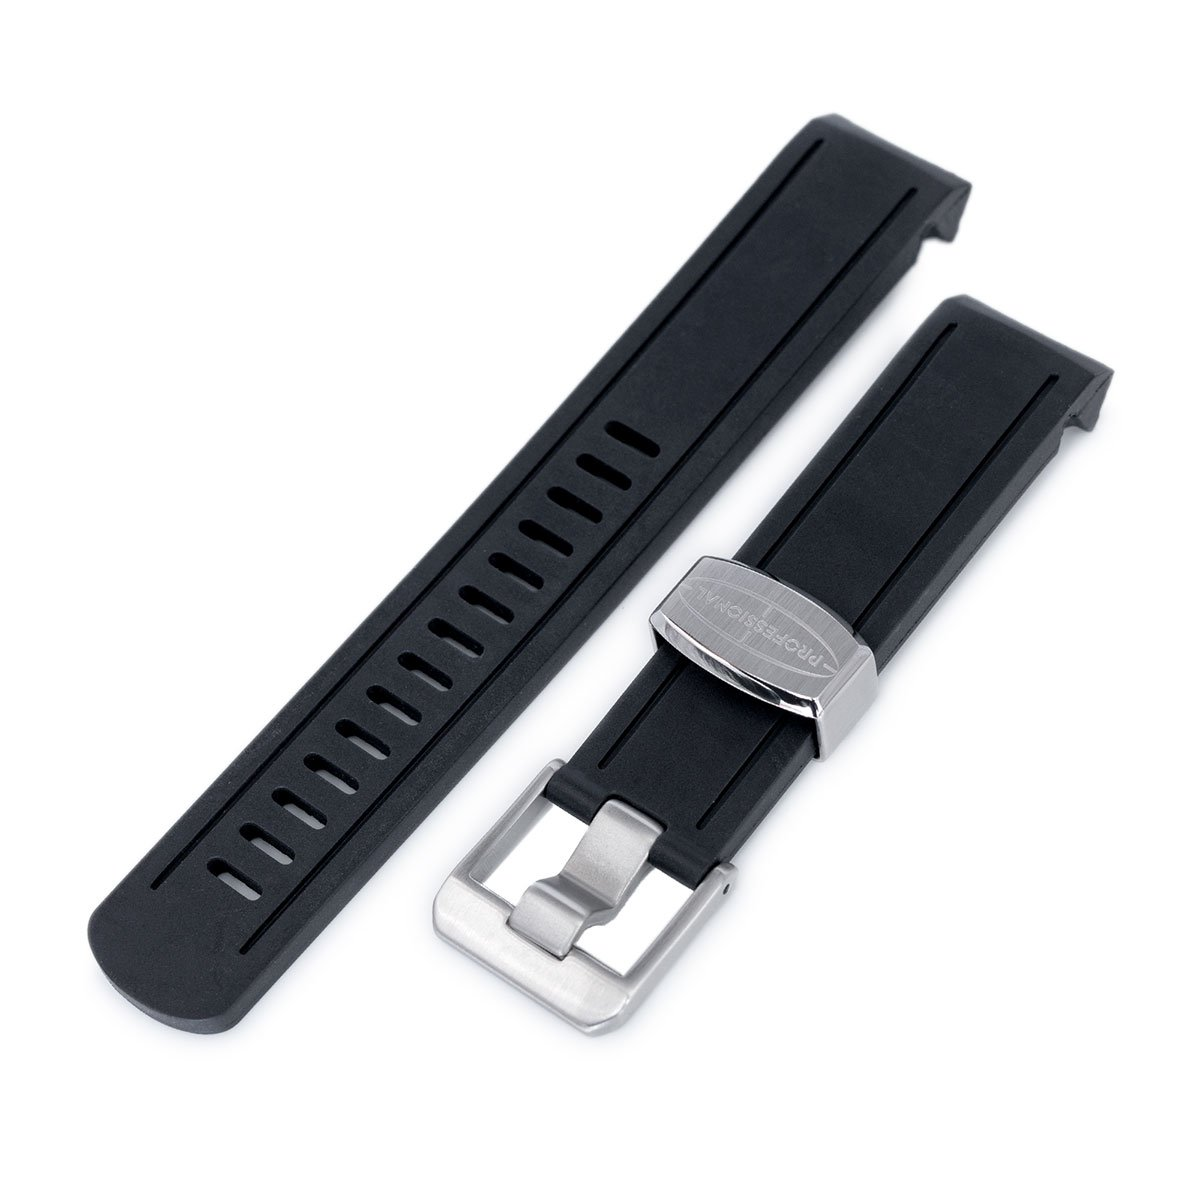 20mm Crafter Blue - Black Rubber Curved Lug Watch Band for Seiko Sumo SBDC001